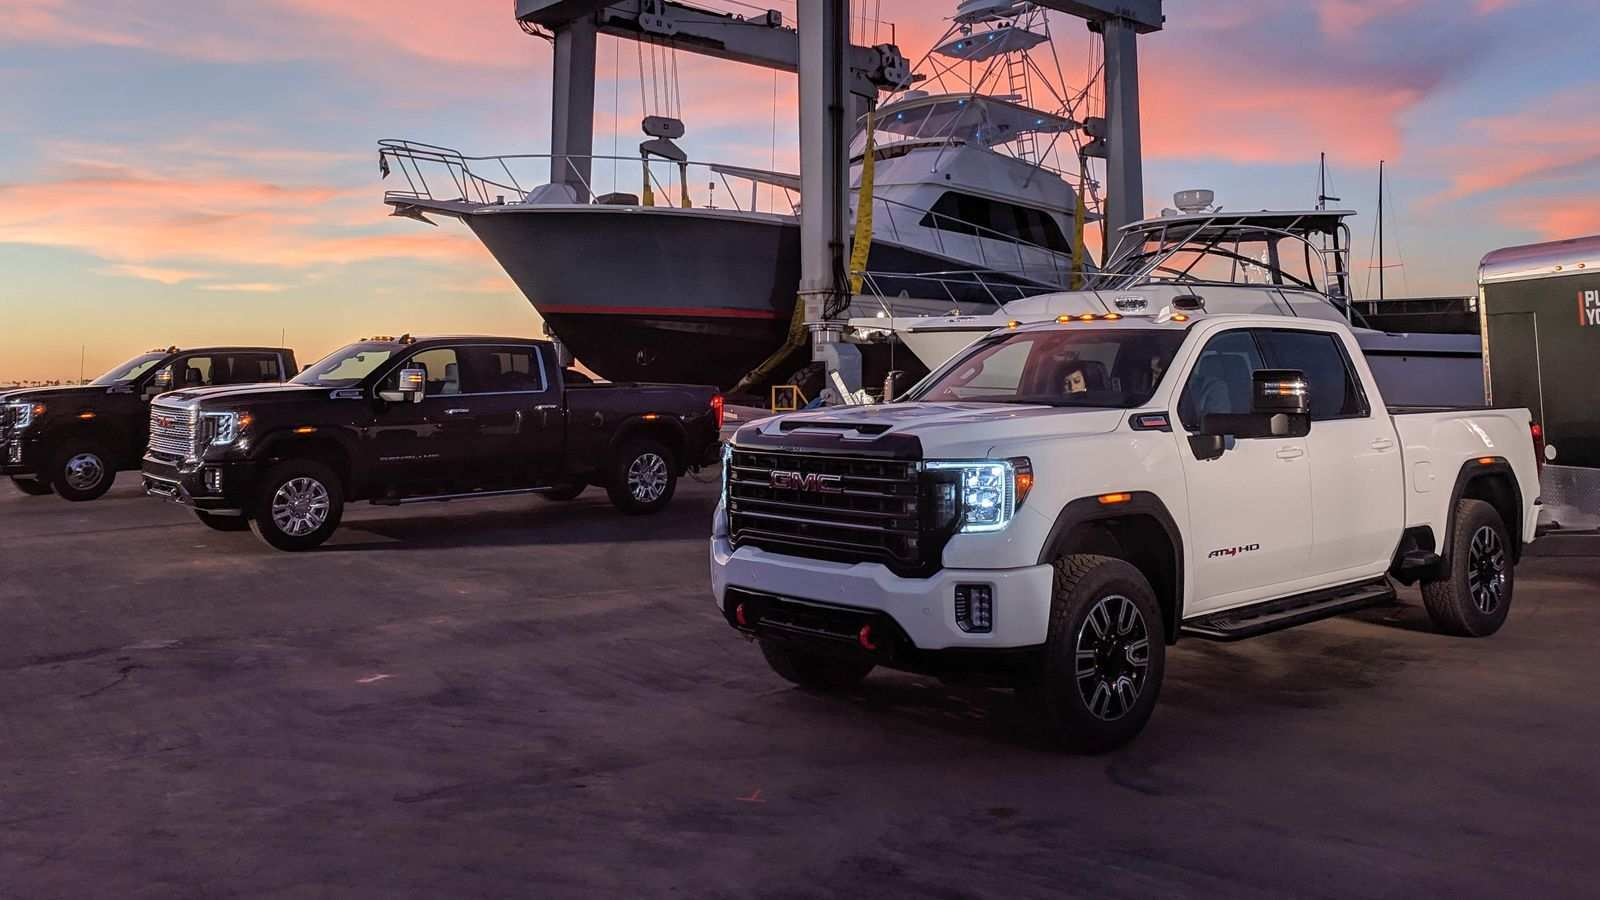 42 New When Is The 2020 Gmc 2500 Coming Out Spy Shoot with When Is The 2020 Gmc 2500 Coming Out